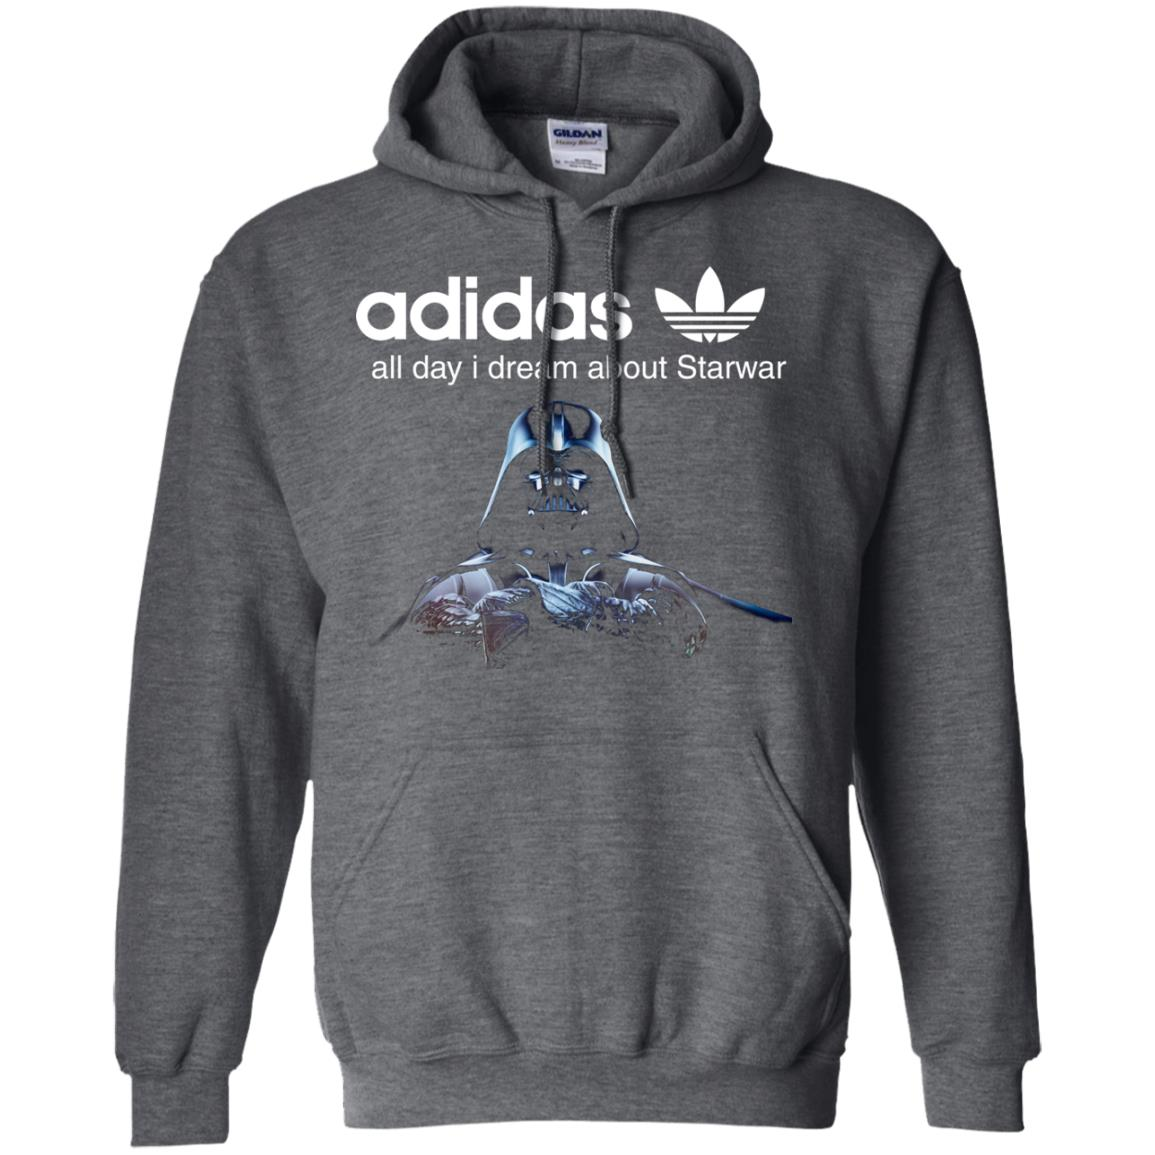 image 409px Adidas all day I dream about Starwar t shirts, hoodies, tank top